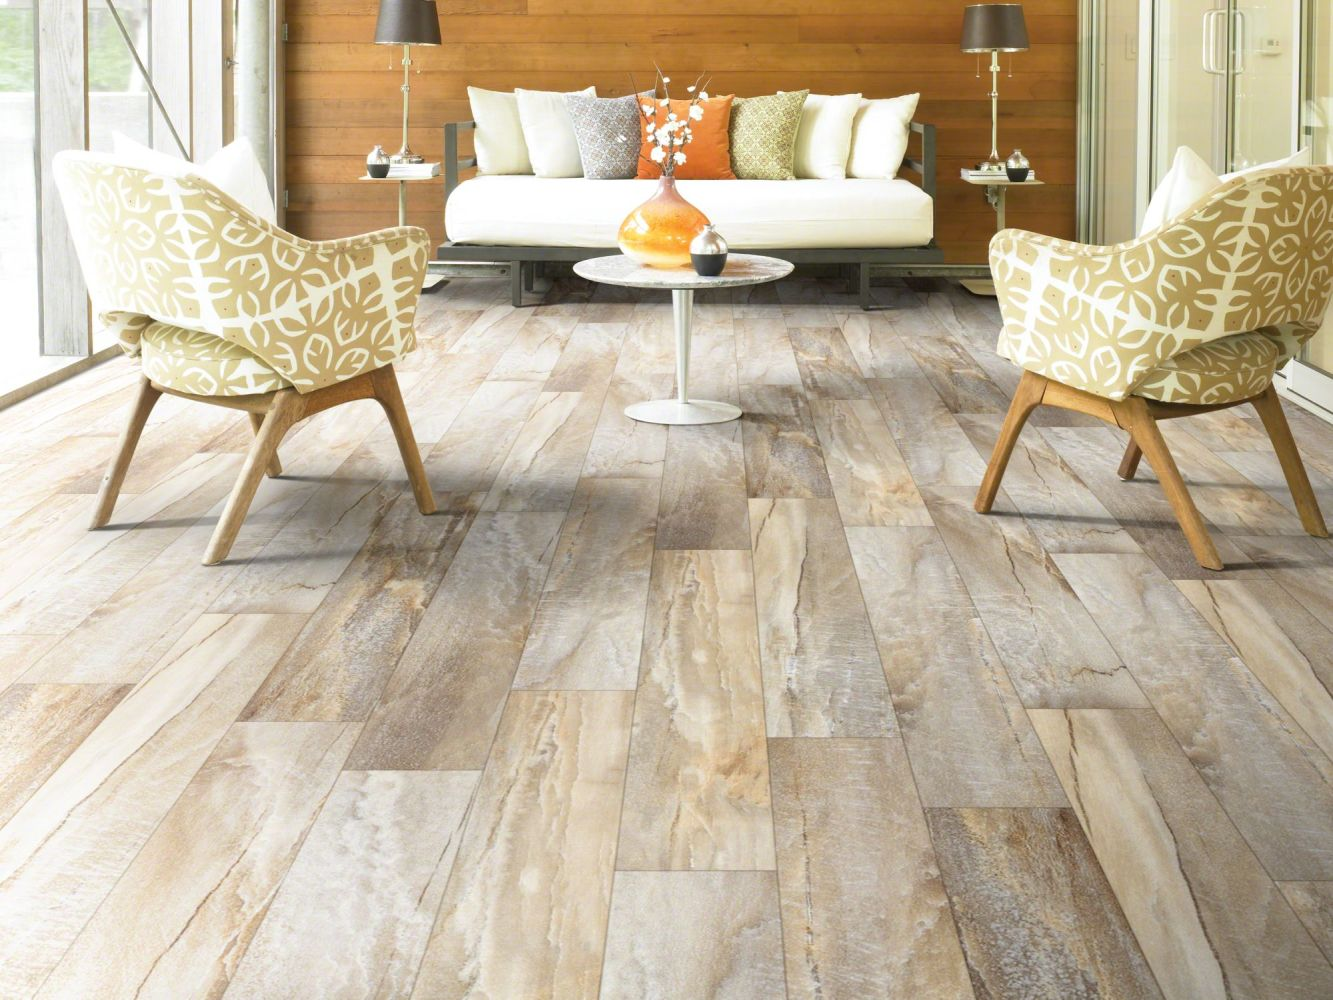 Shaw Floors Resilient Property Solutions Easy Fashion Ginger 00605_VPS50